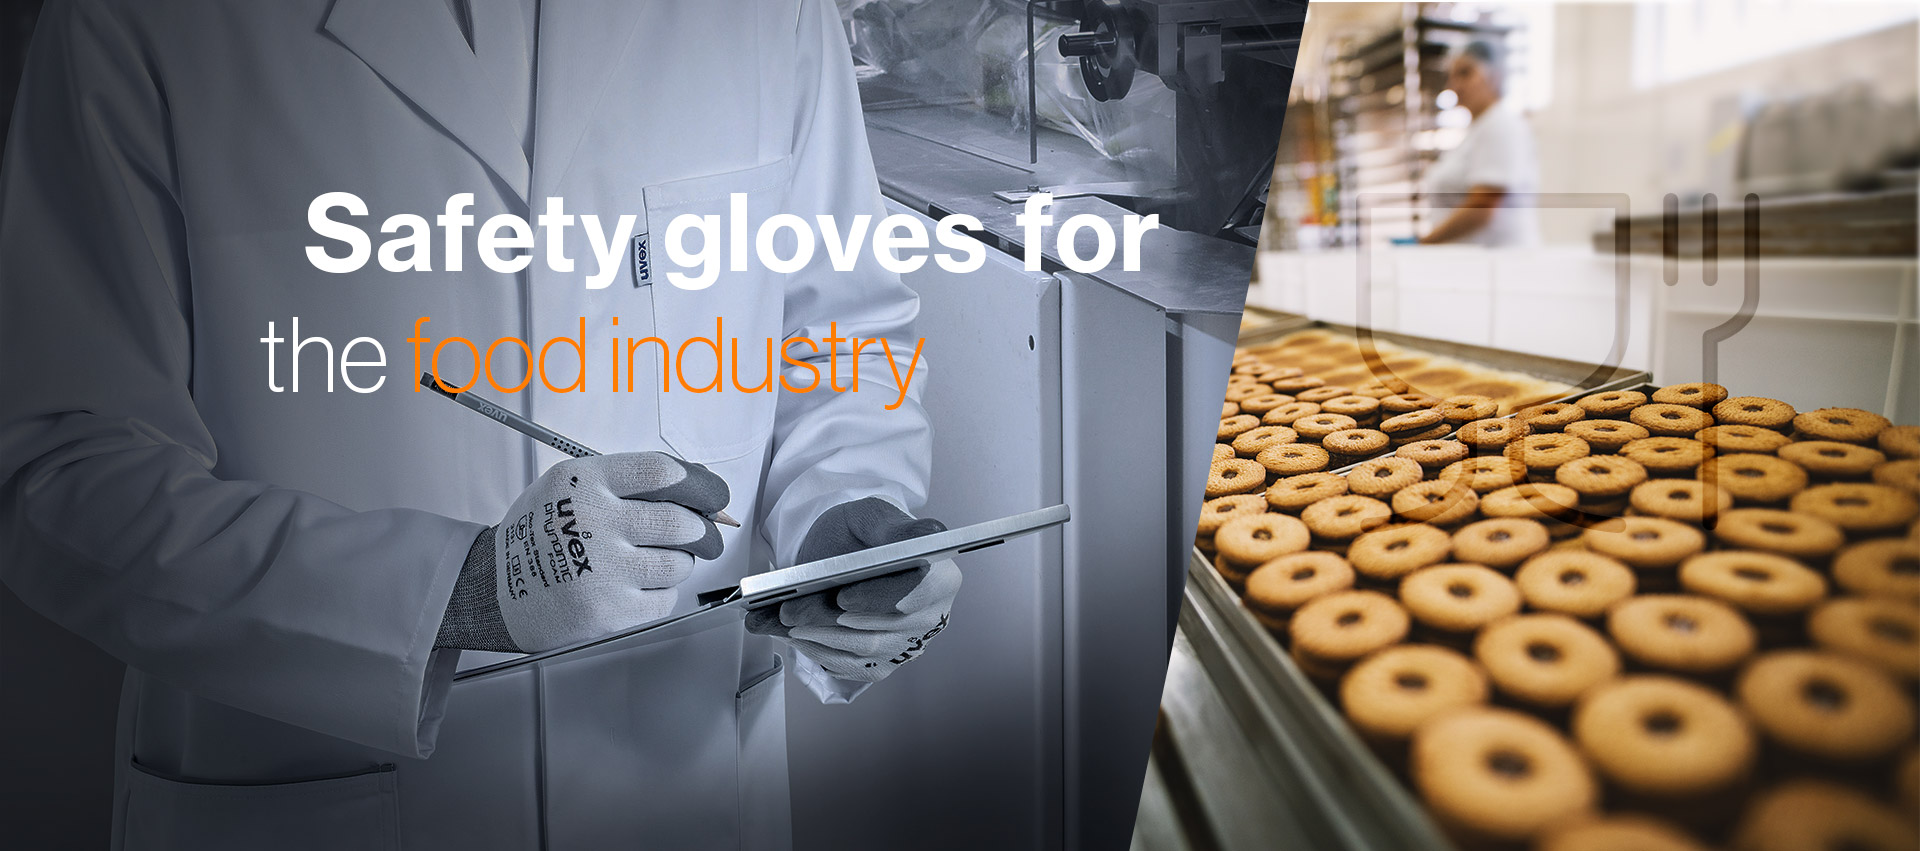 Food standard approved safety gloves from uvex